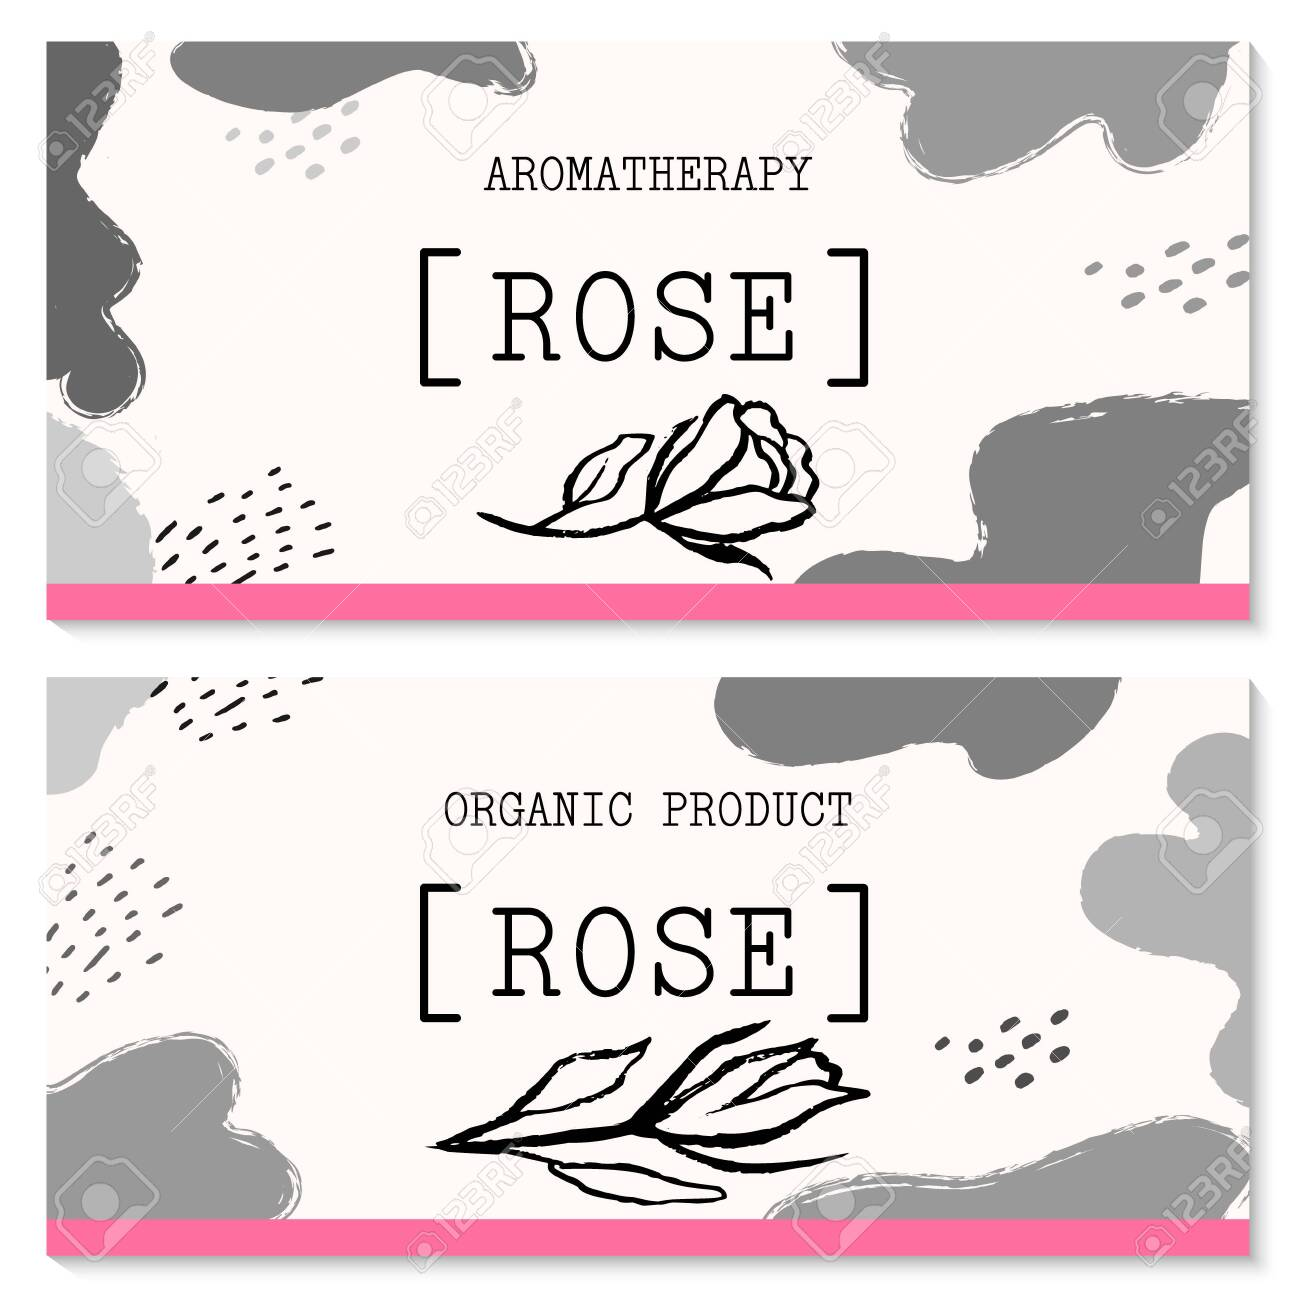 Vector packaging design and template for labels and bottles of rose and rose oil products. Vector hand drawn illustration. Abstract Background Doodle Style Stickers for Natural, Organic Cosmetics, Food - 145964449